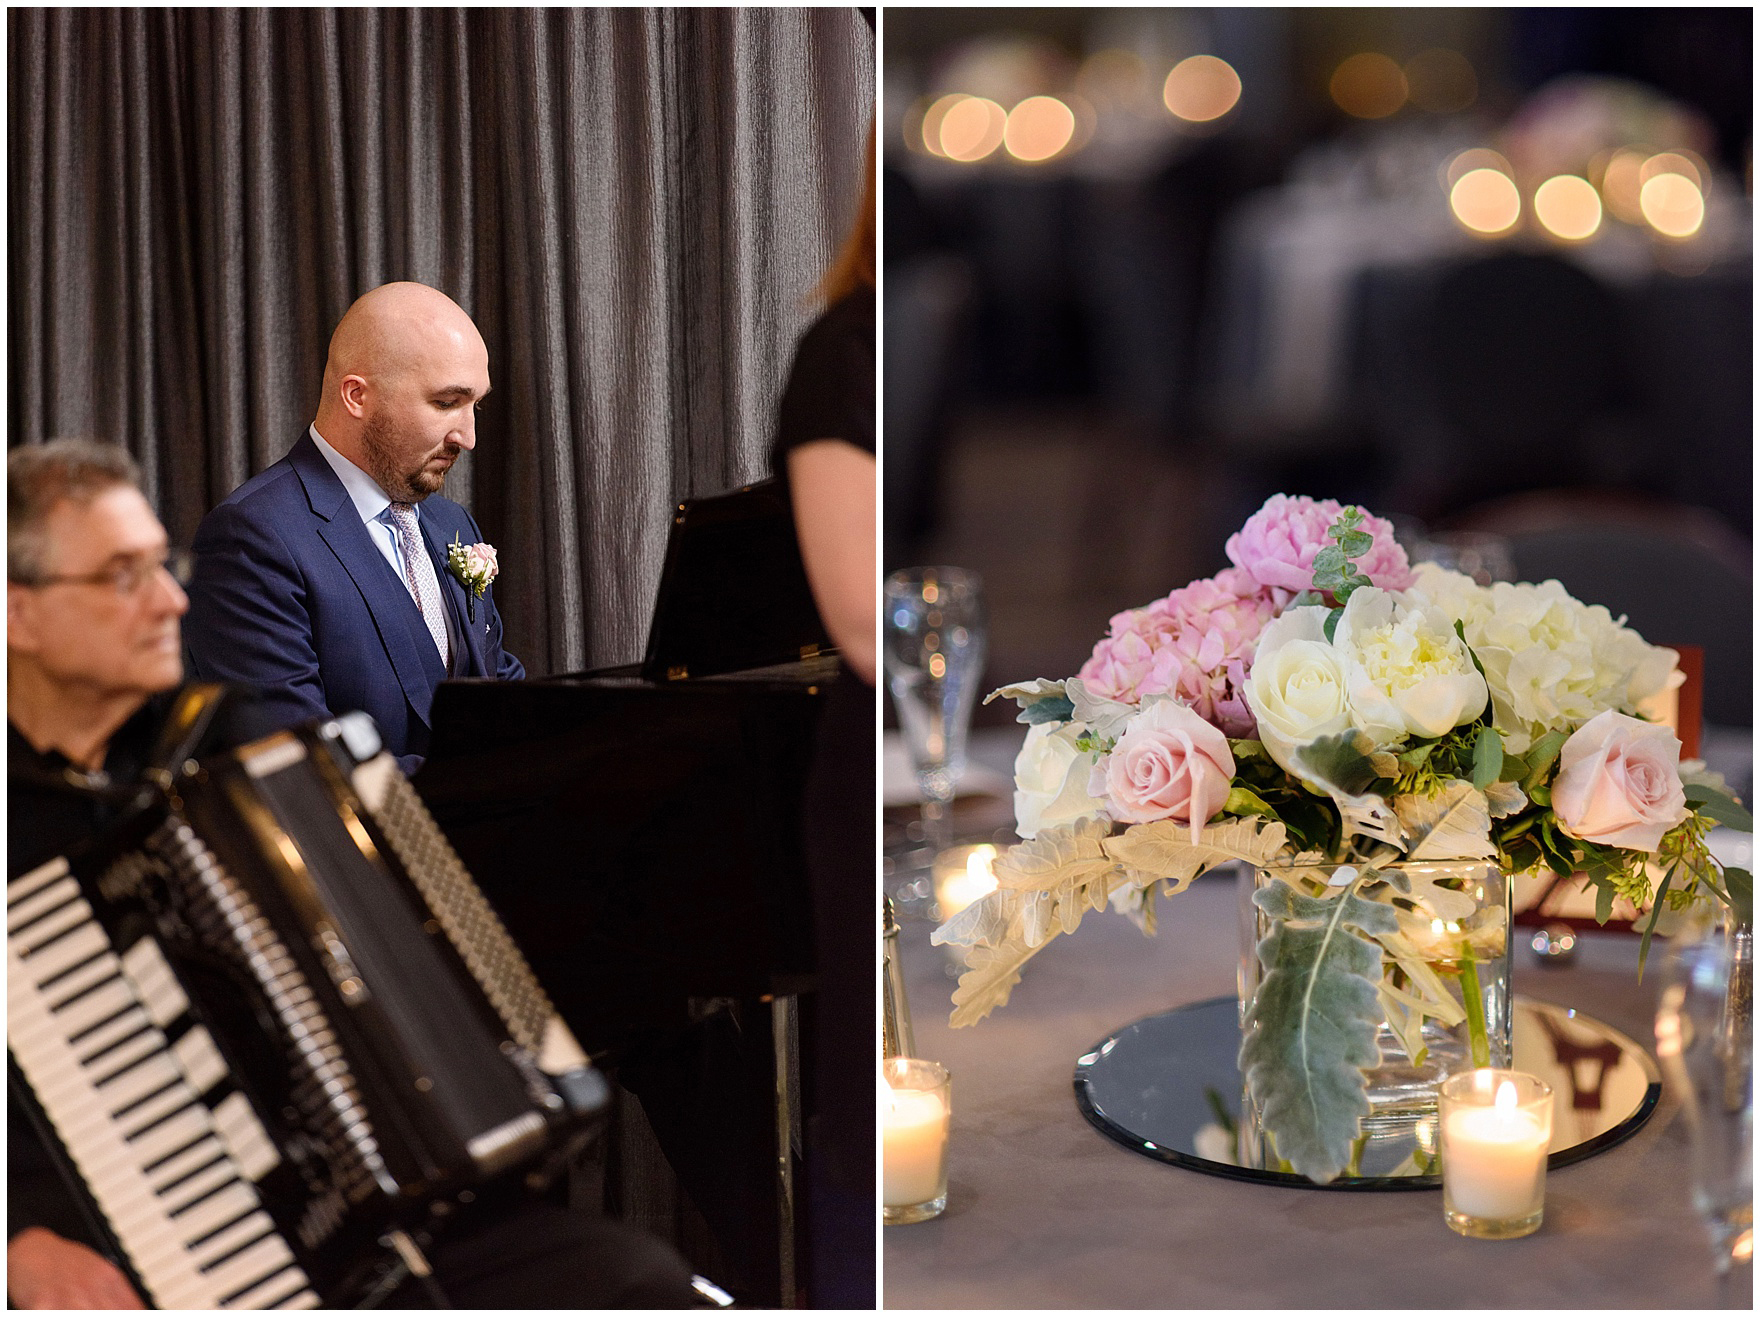 Details from a reception for a St. Nicholas Ukrainian Church and downtown Chicago East Bank Club wedding.